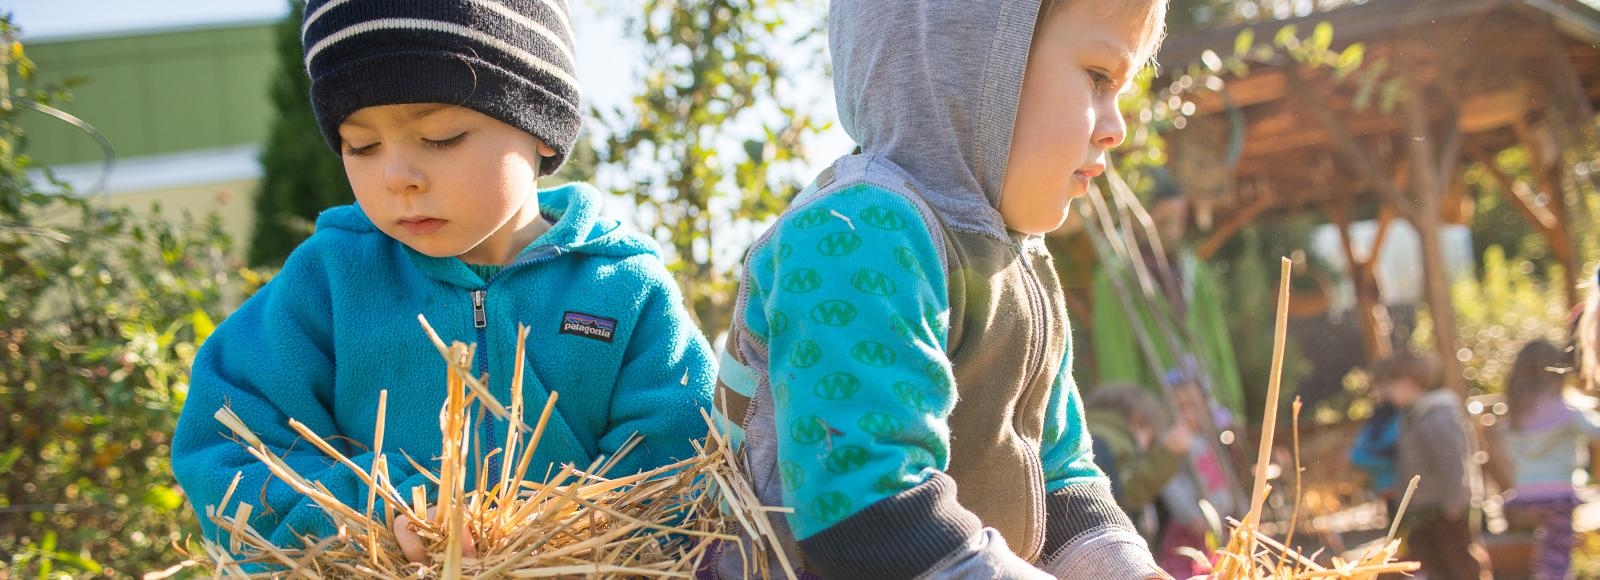 Two preschool students hold handfuls of straw, as if moving them to a new spot in the garden to be used as mulch.